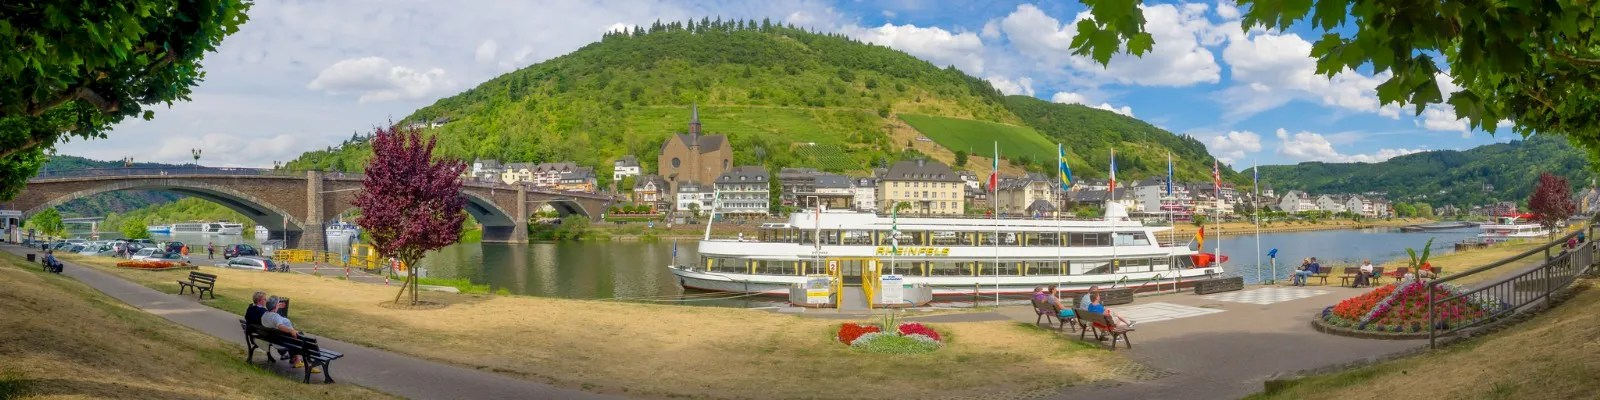 Metz To Cochem Bike And Barge Tour Germany France